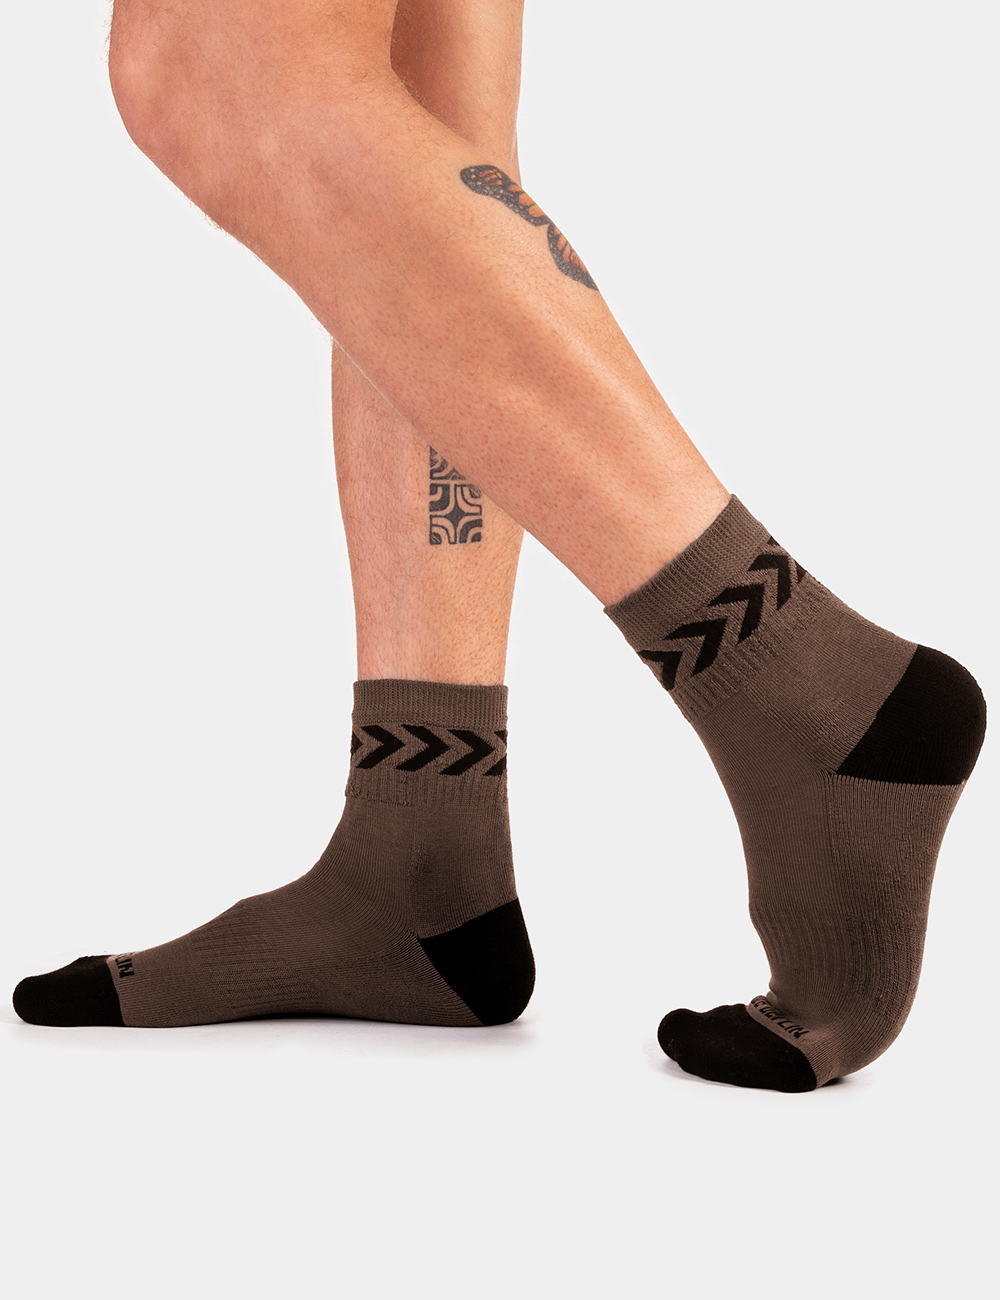 Barcode Berlin Petty Socks | Green|Black